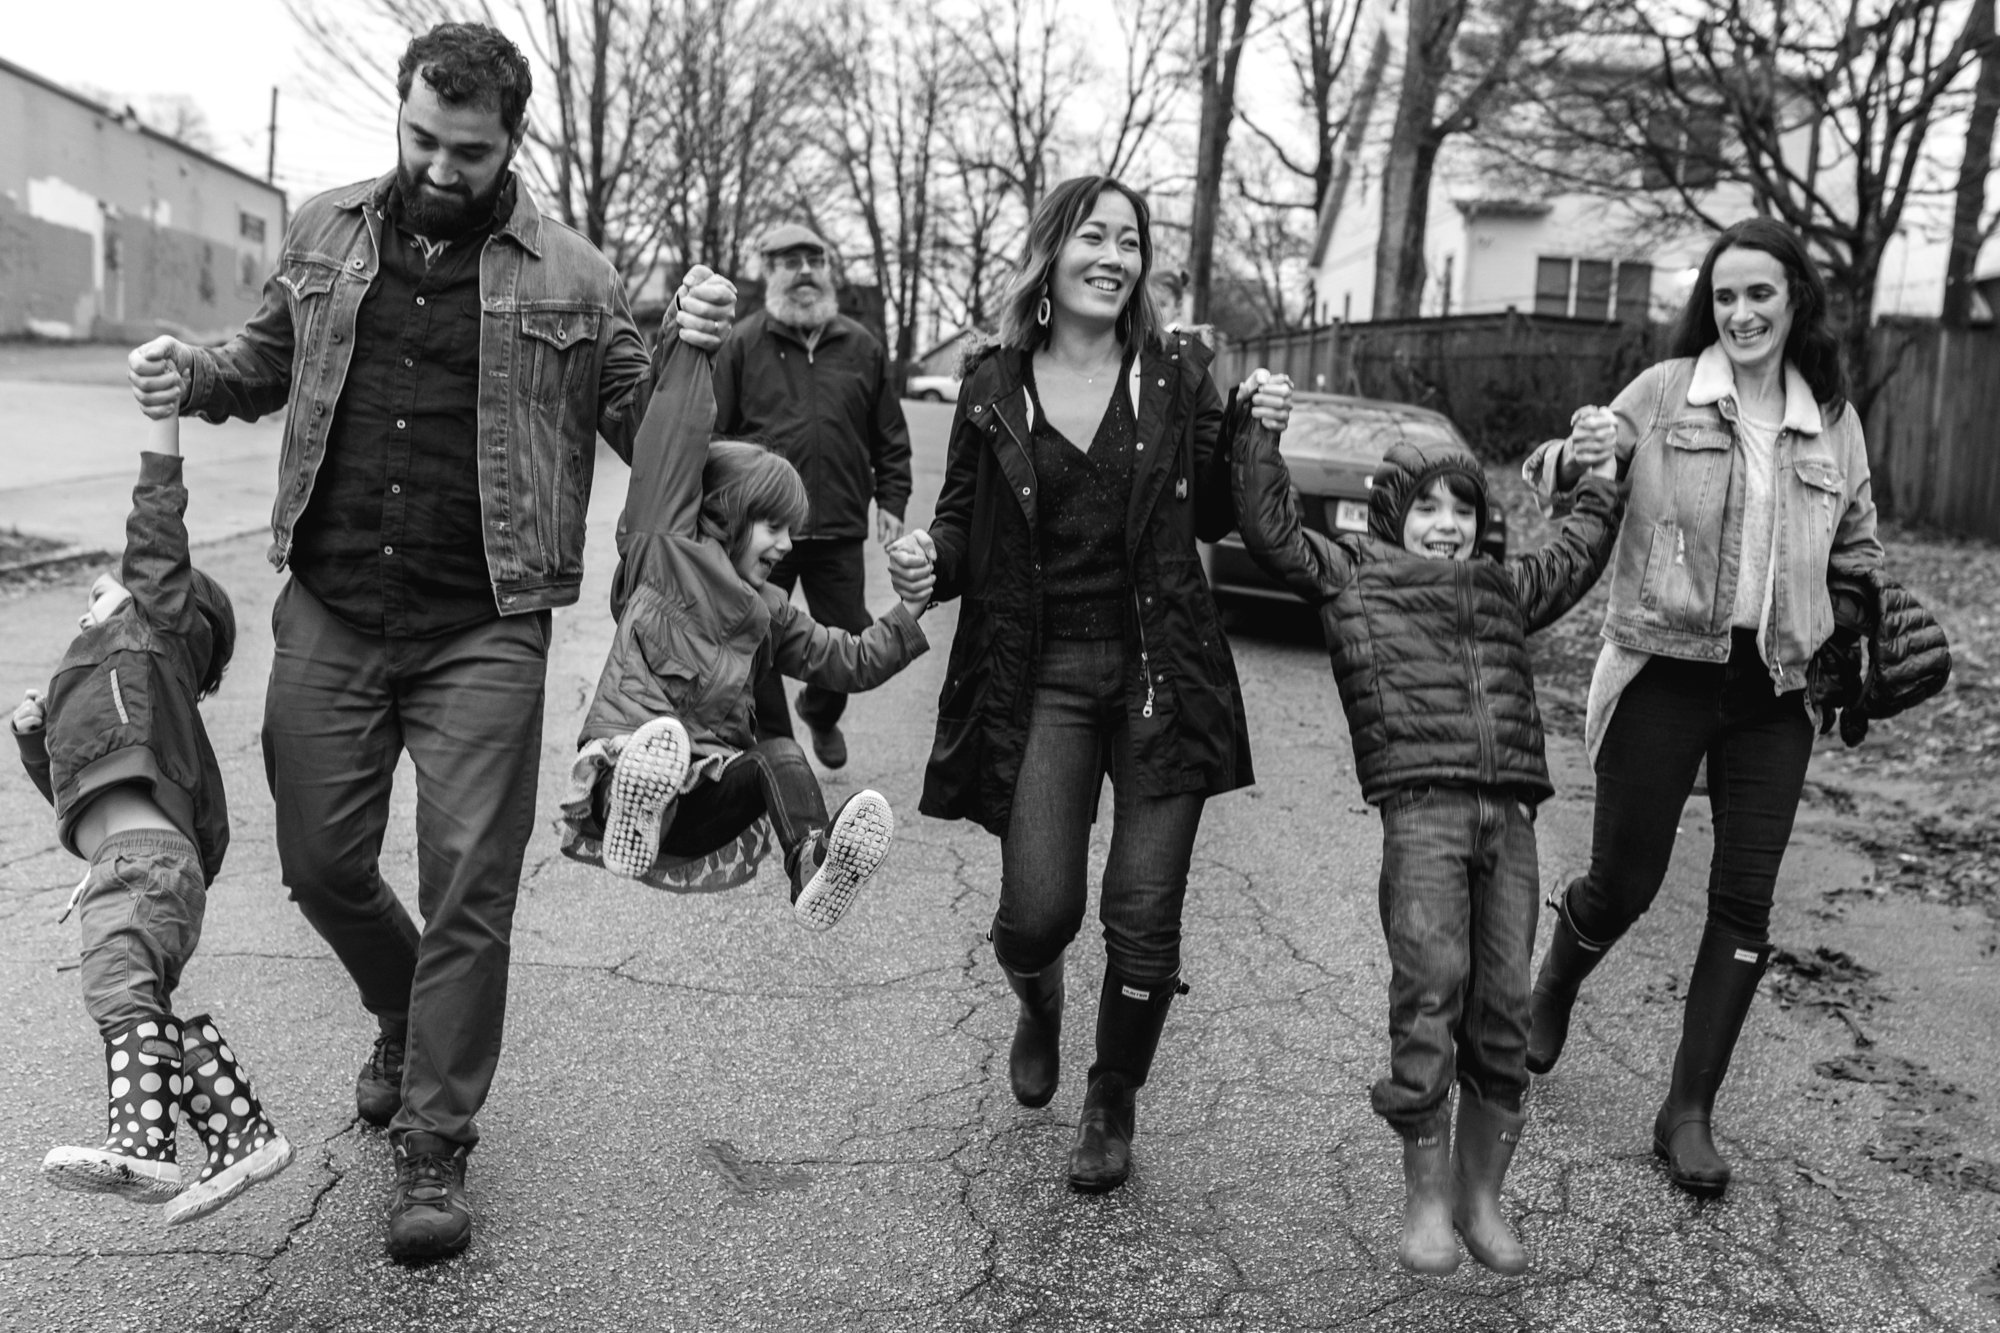 An extended family walks down the street swinging children from their arms